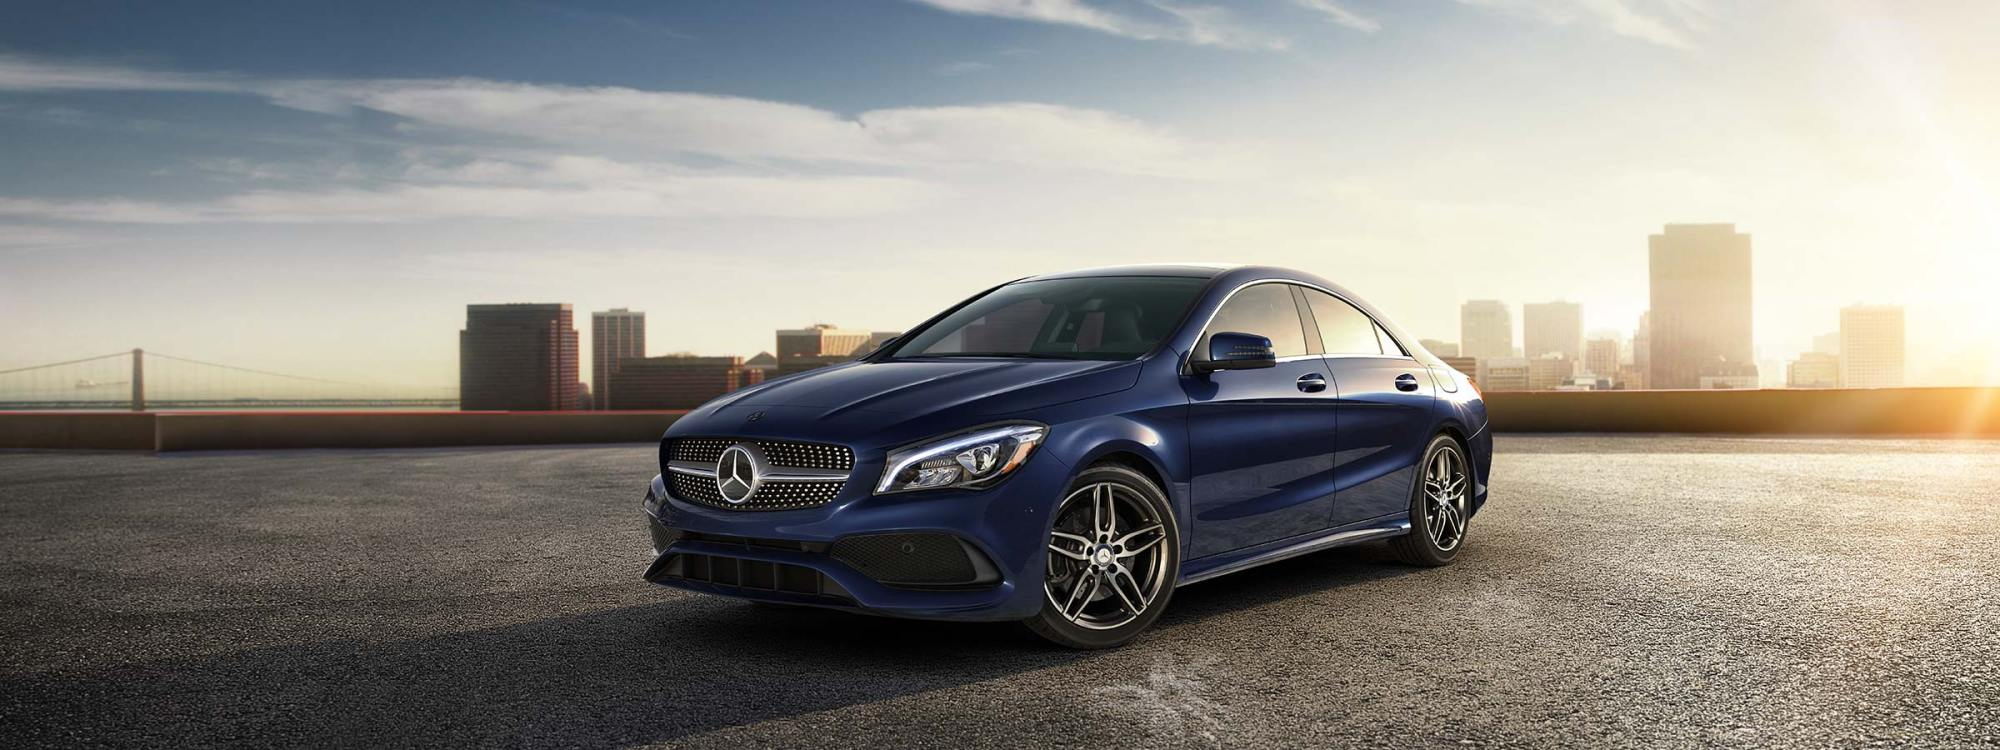 hight resolution of cla 4 door coupe